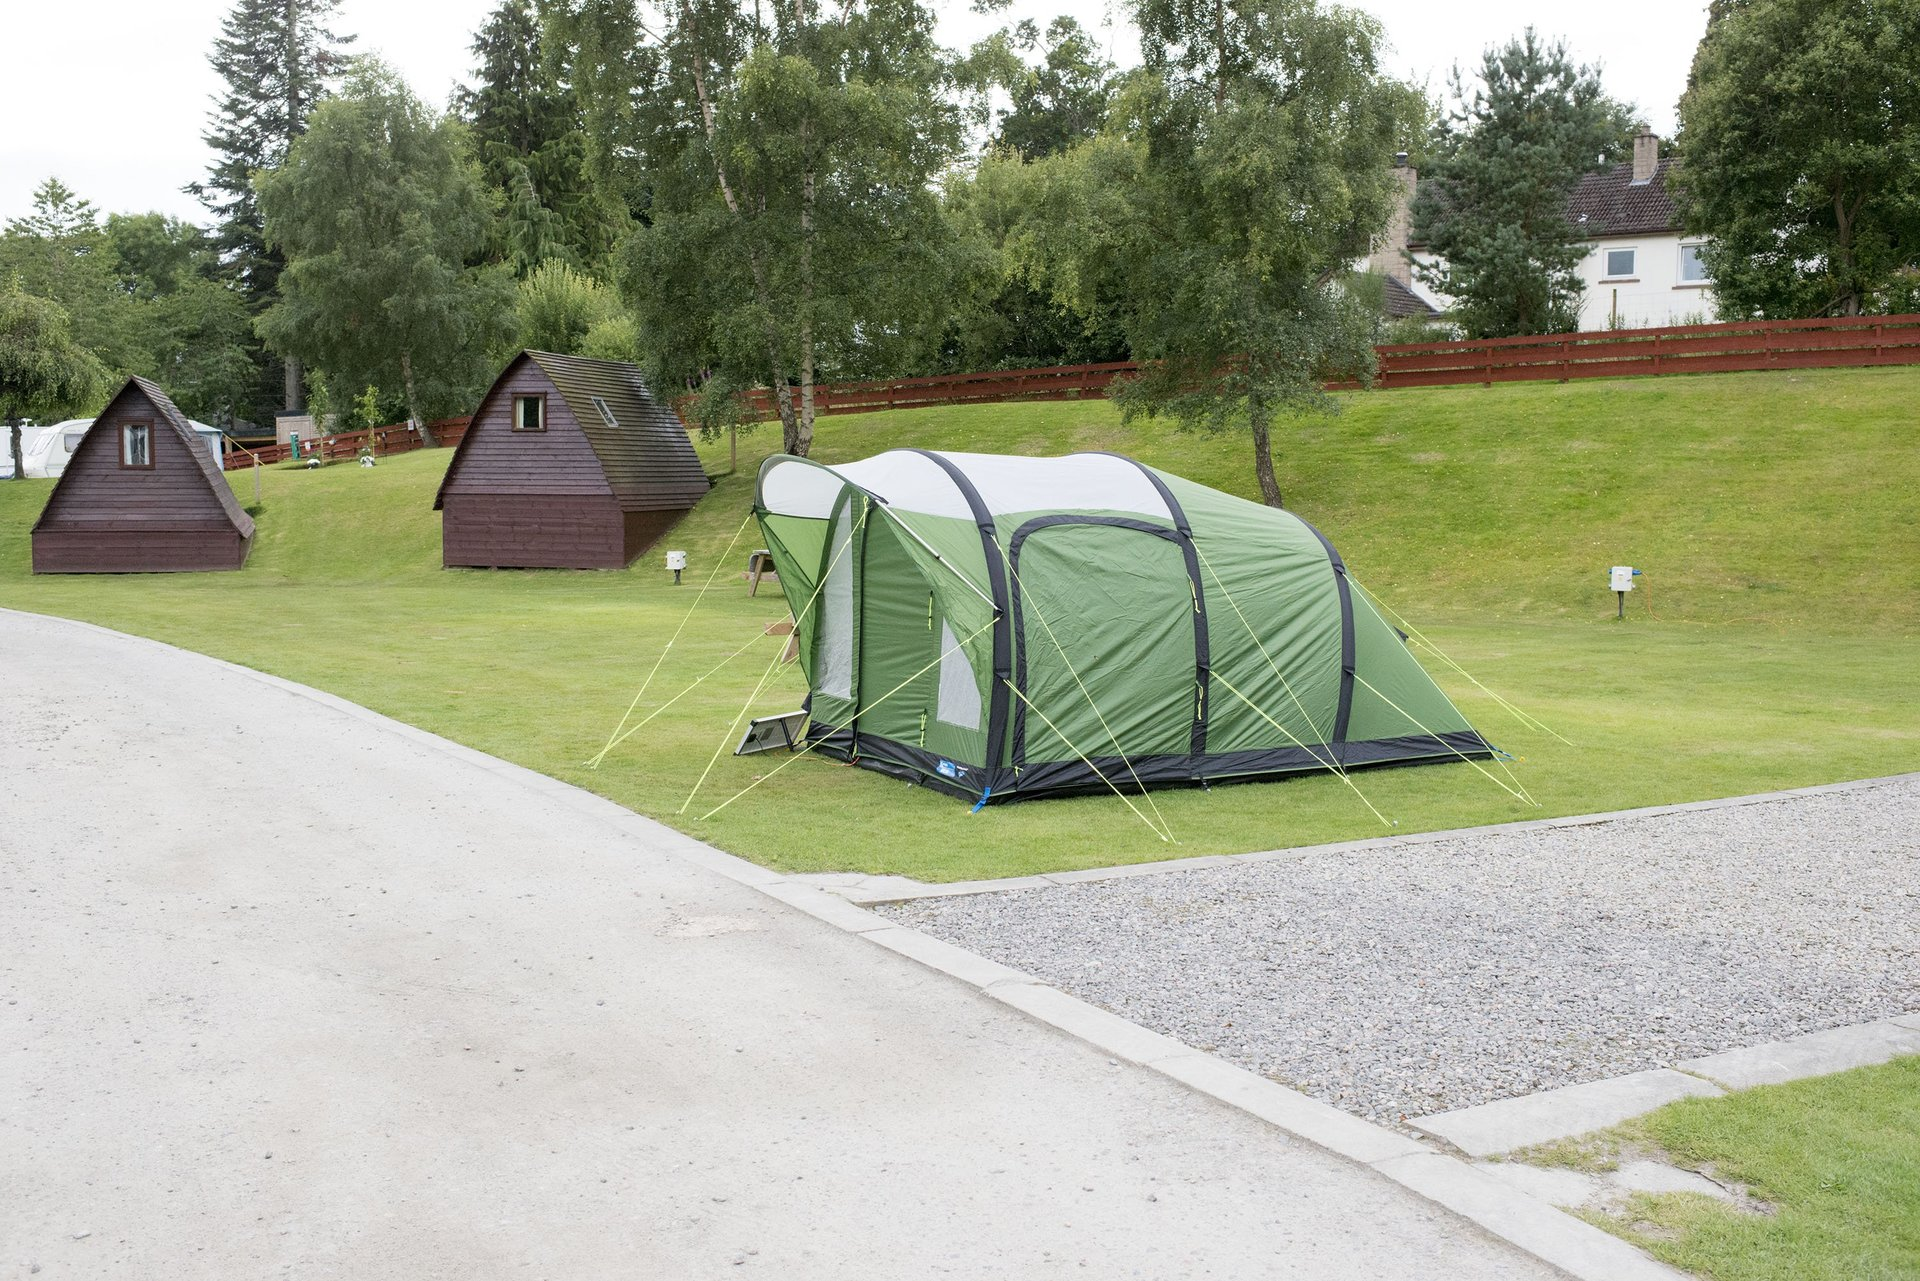 Black Rock Camping Caravan Site - Amenities - Reception